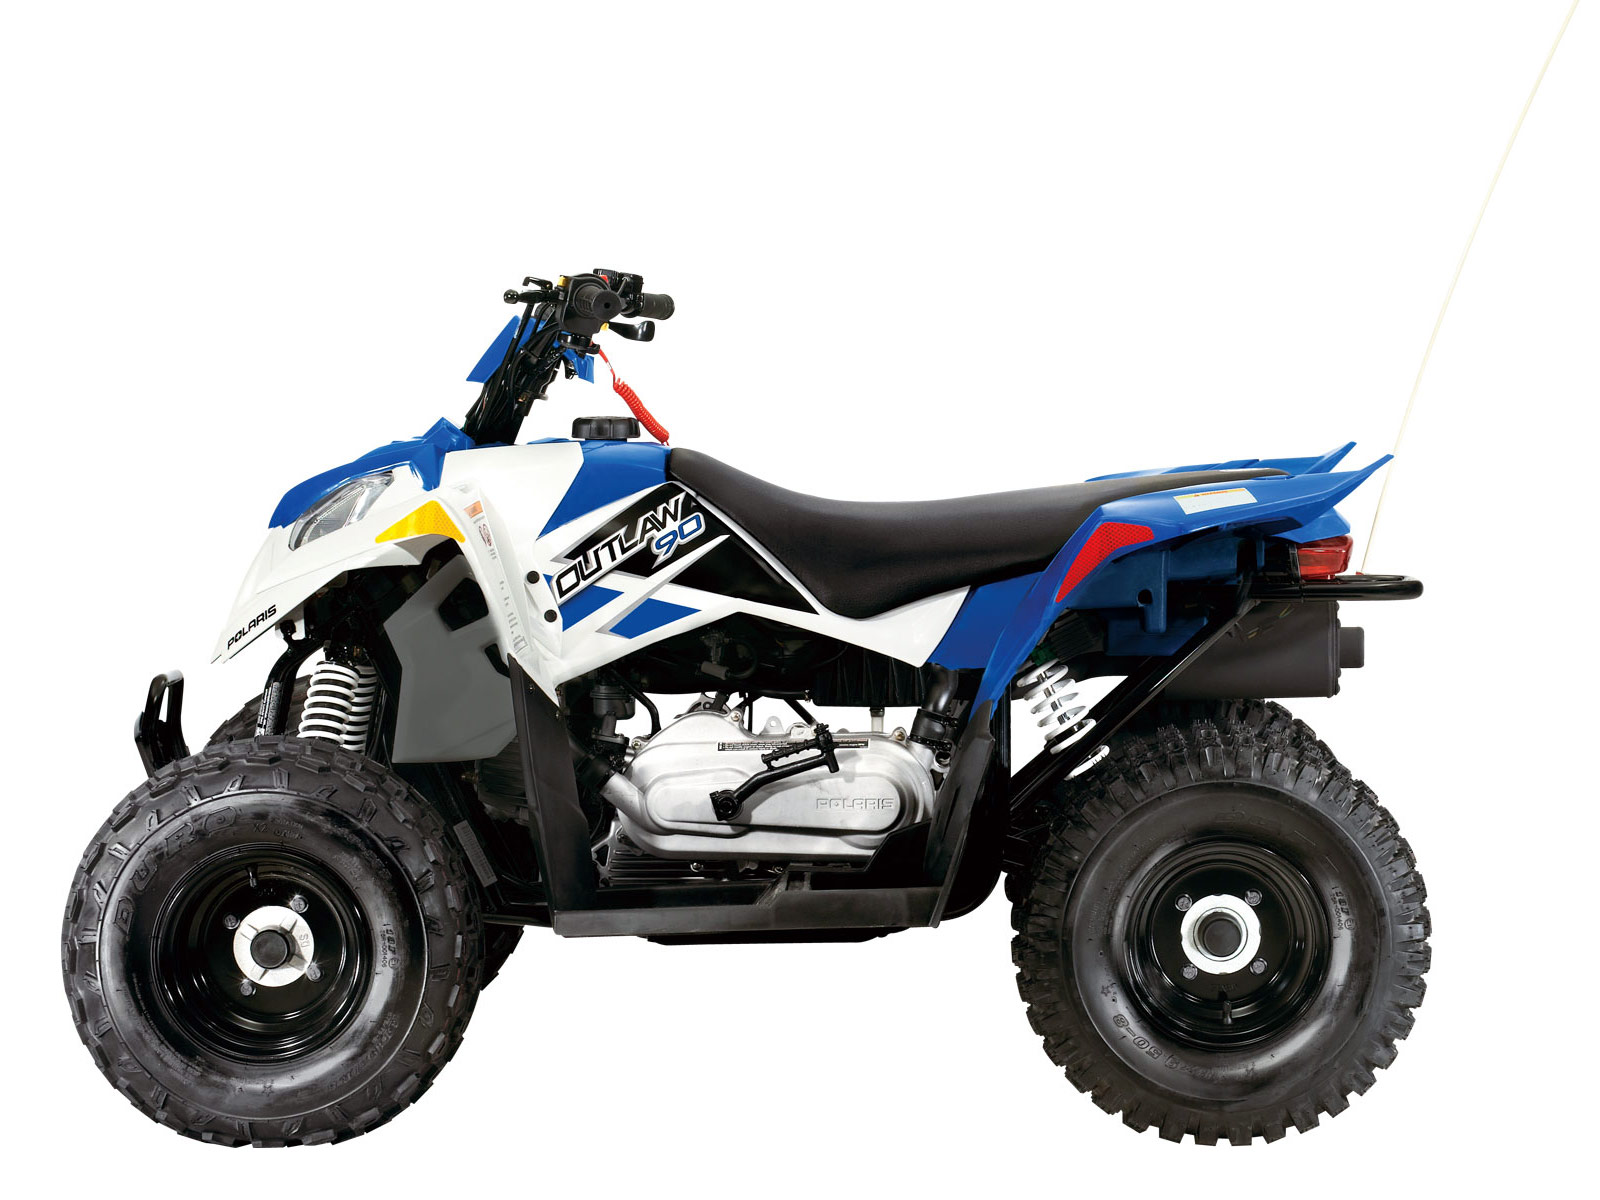 Guaranteed Atv Financing